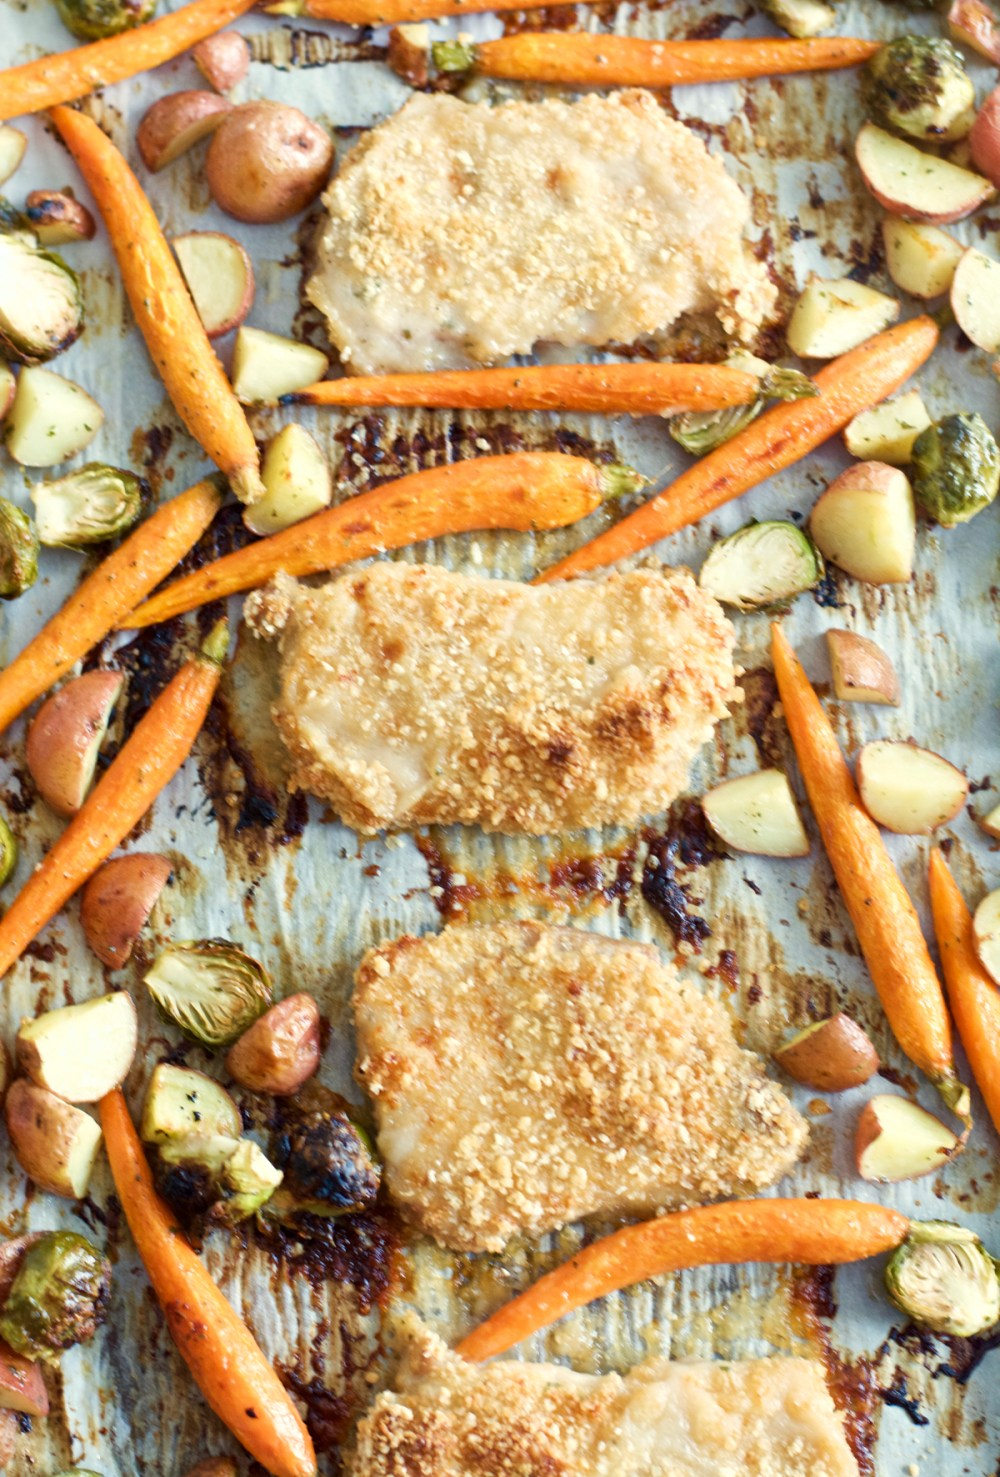 Try these easy One Pan Crispy Pork Chops and Ranch Roasted Veggies for an easy Fall meal ready in just 30 minutes!